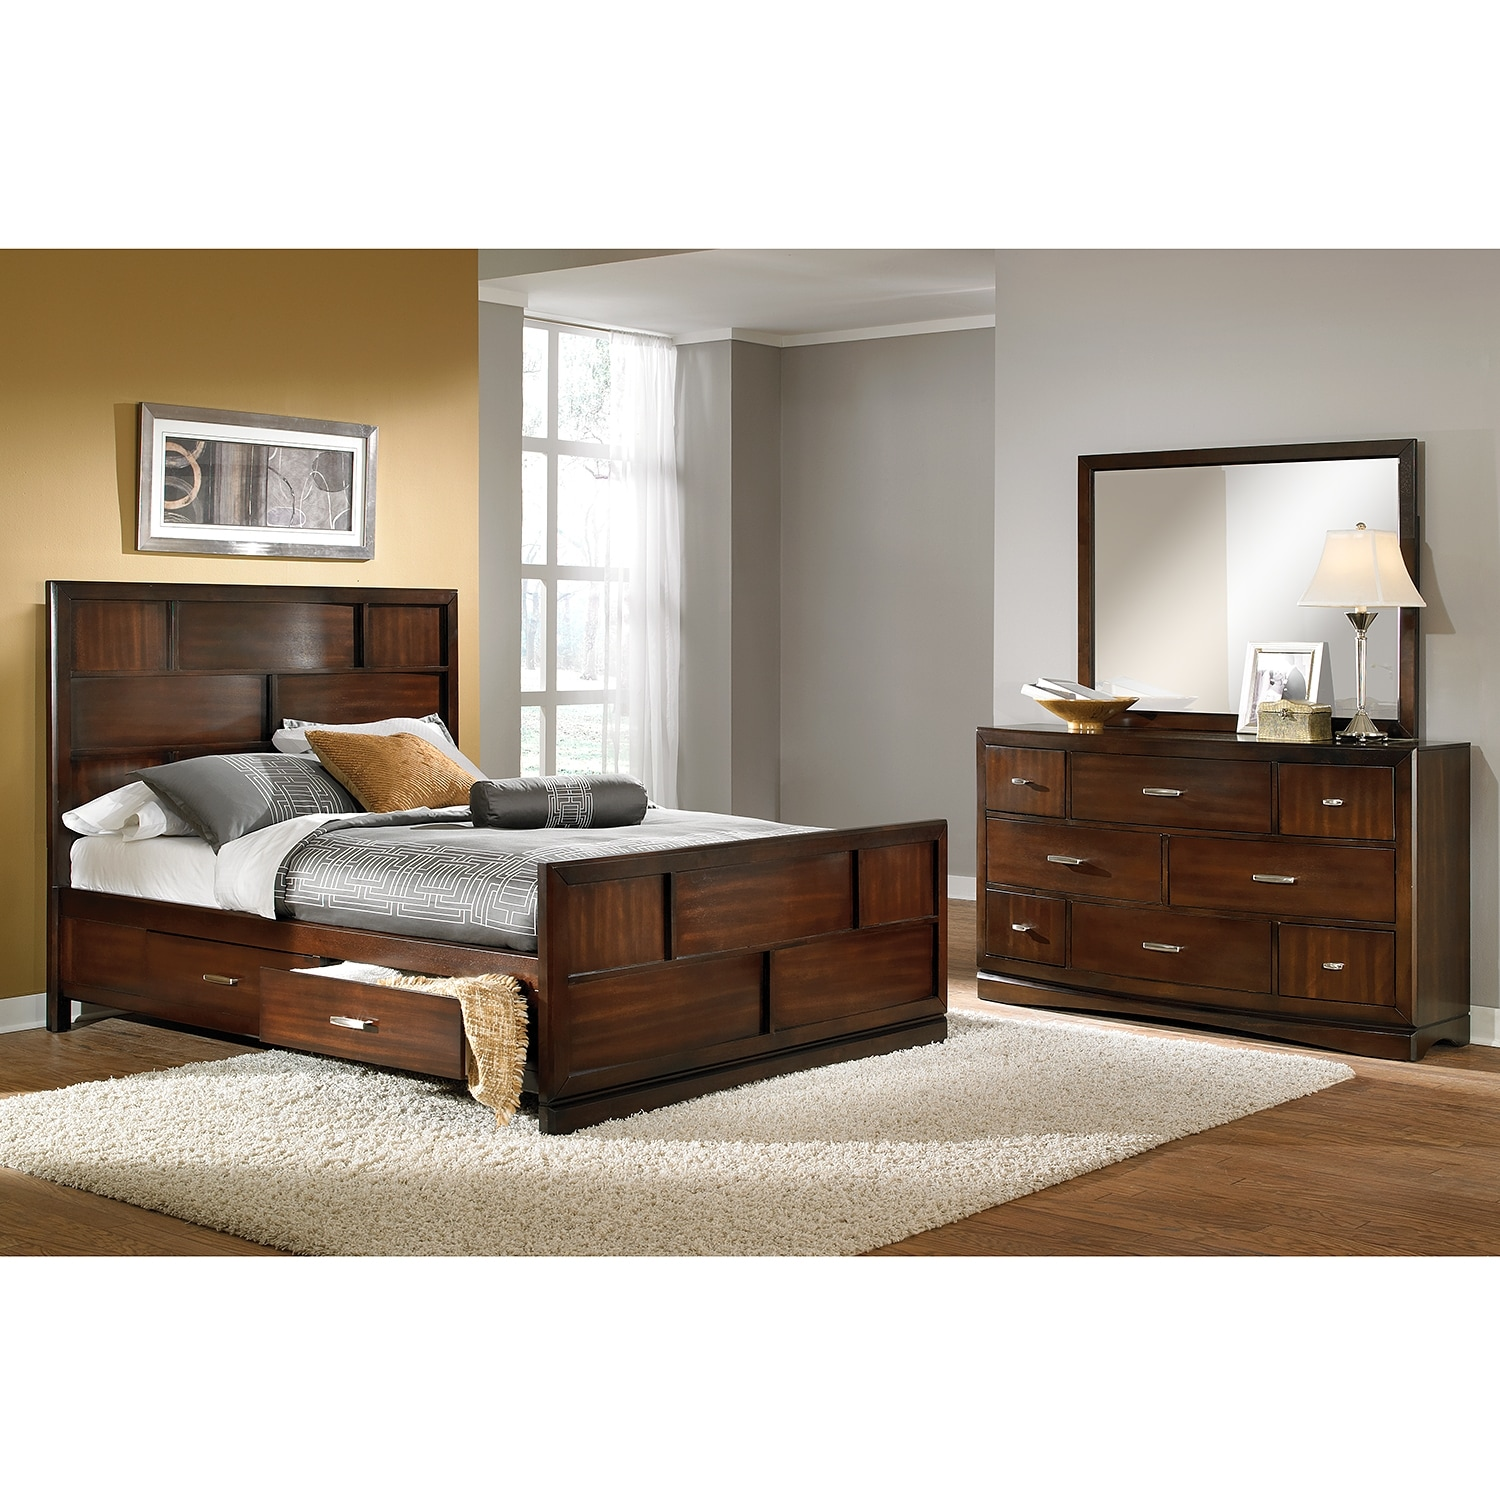 Bedroom Furniture - Toronto 5-Piece King Storage Bedroom Set - Pecan